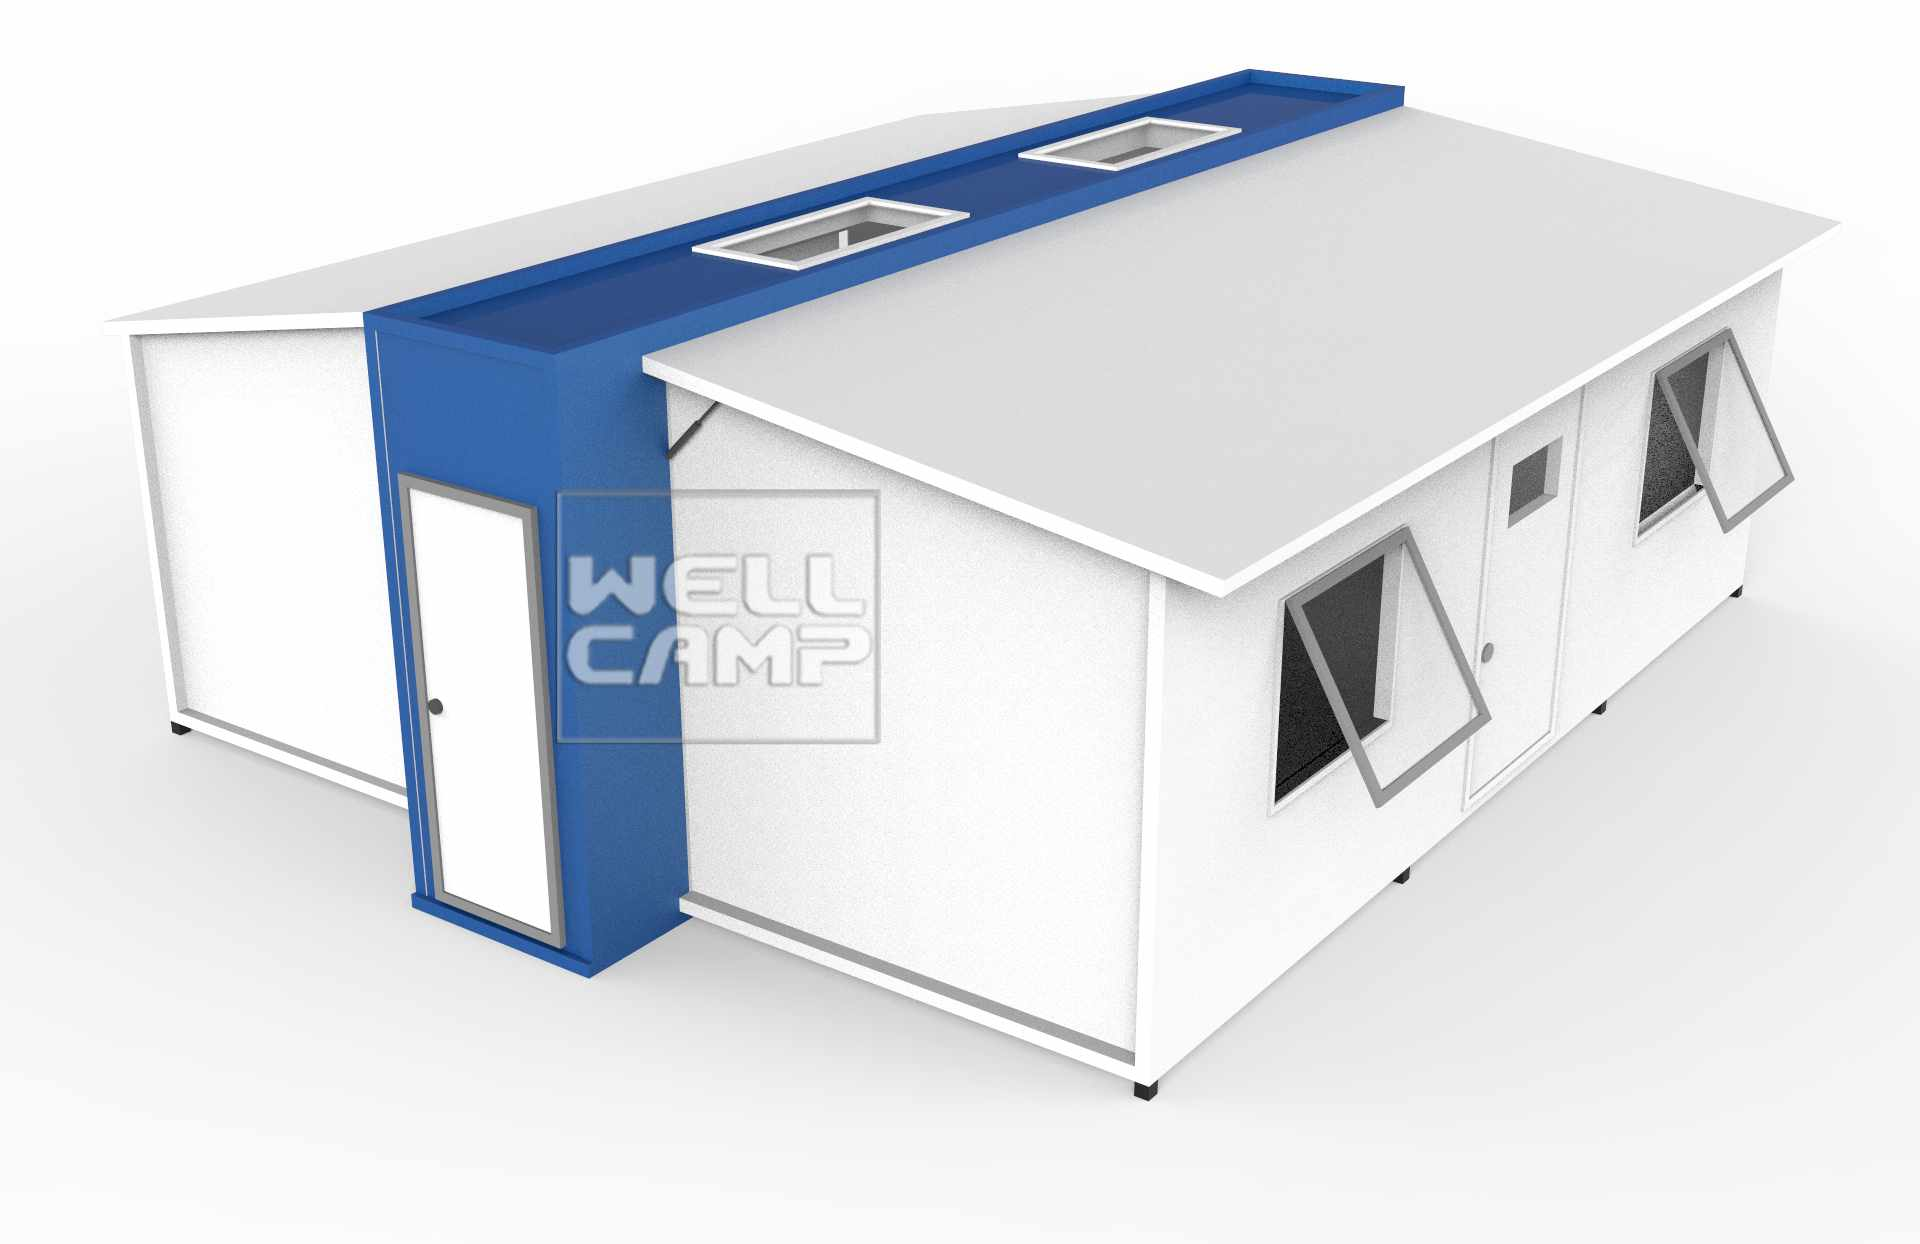 WELLCAMP Expandable Container Shelters House for Family & Student Dormitory E-01 Expandable Container House image17